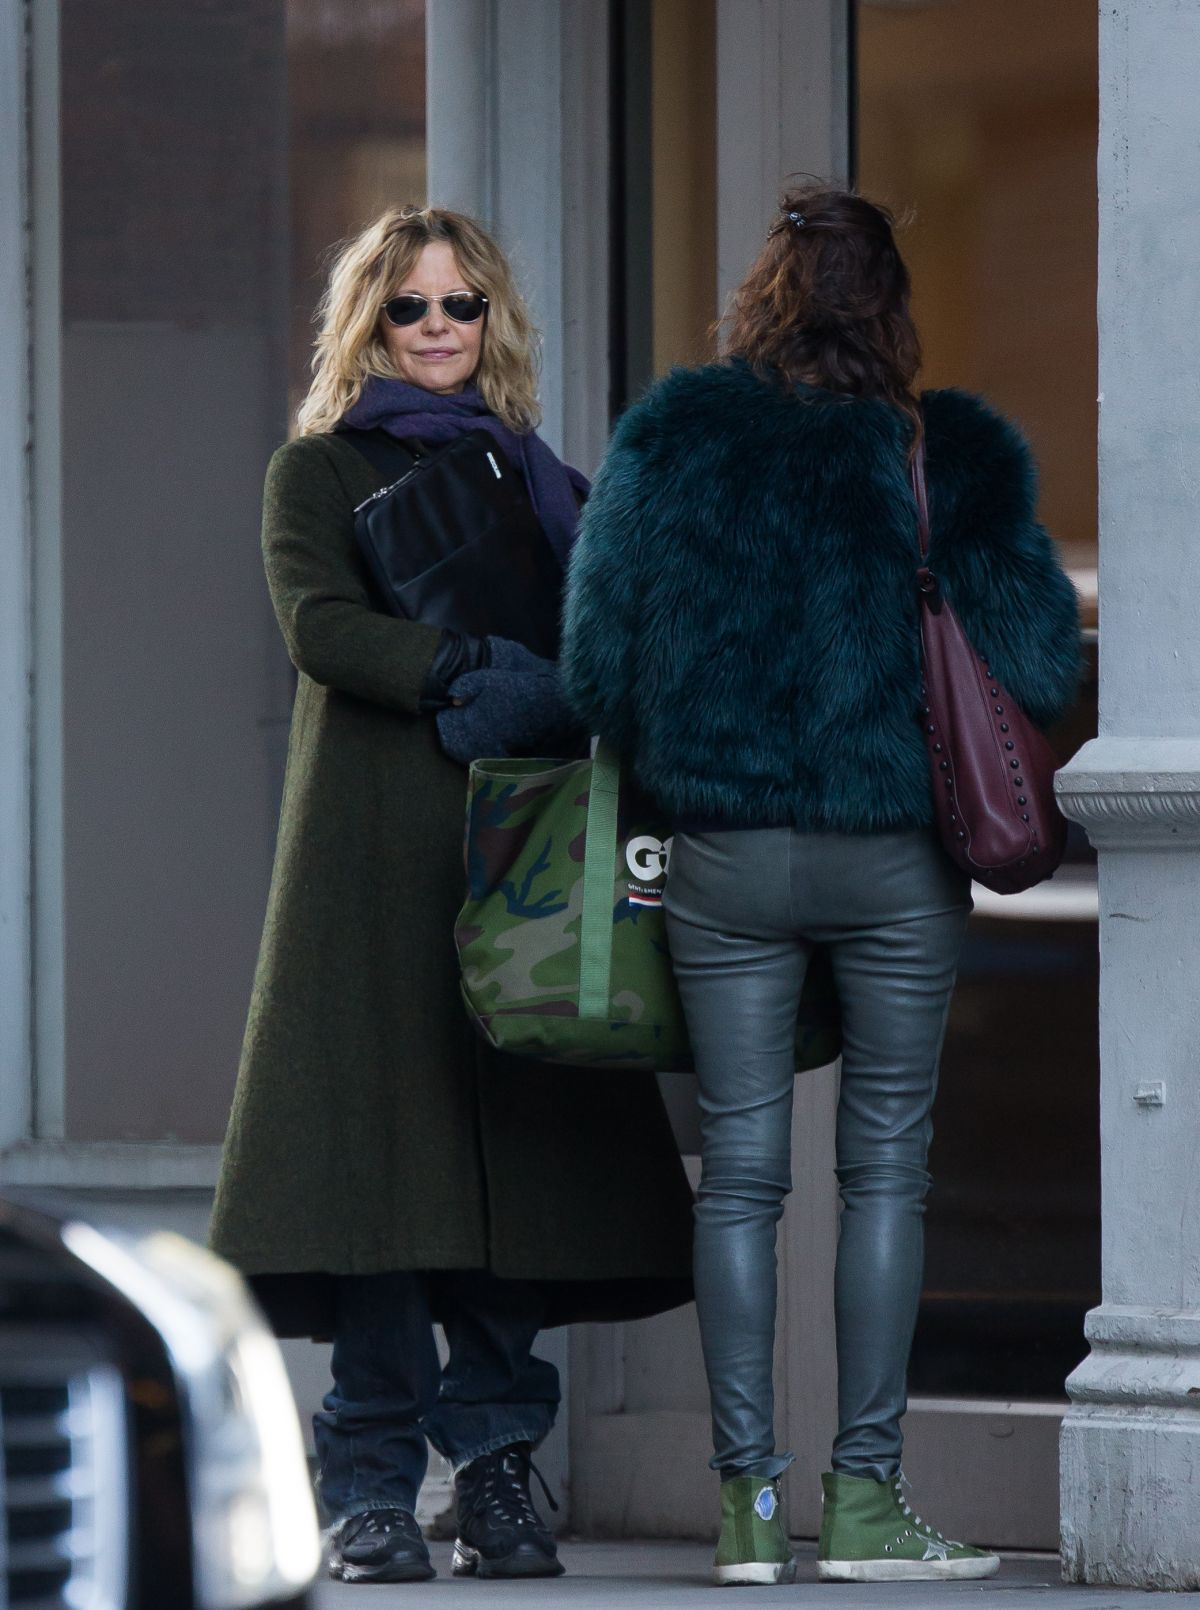 MEG RYAN Look at Apartment She Want to Purchase in Greenwich Village 03/28/2017